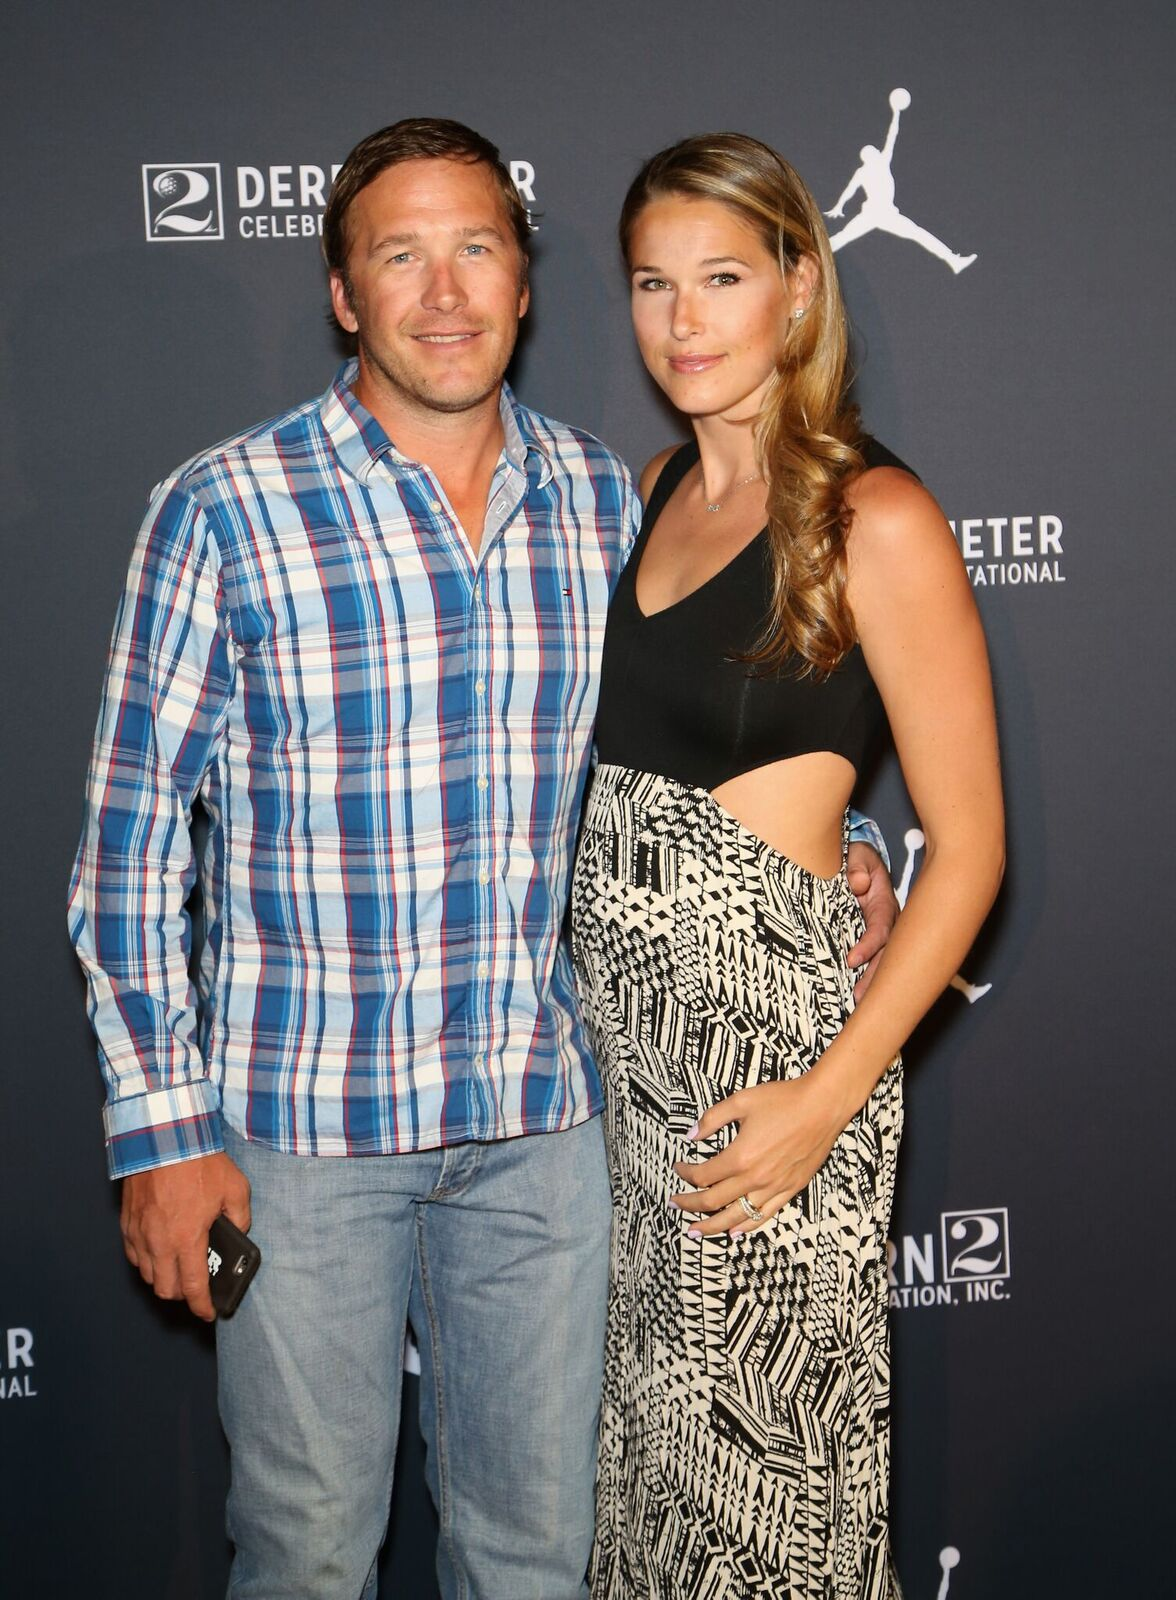 Olympic skier and World Cup alpine ski racer Bode Miller (L) and his wife, professional beach volleyball player/model Morgan Beck, arrive at the Liquid Pool Lounge for the kickoff of Derek Jeter's Celebrity Invitational at the Aria Resort & Casino on April 20, 2016 in Las Vegas, Nevada | Photo: Getty Images